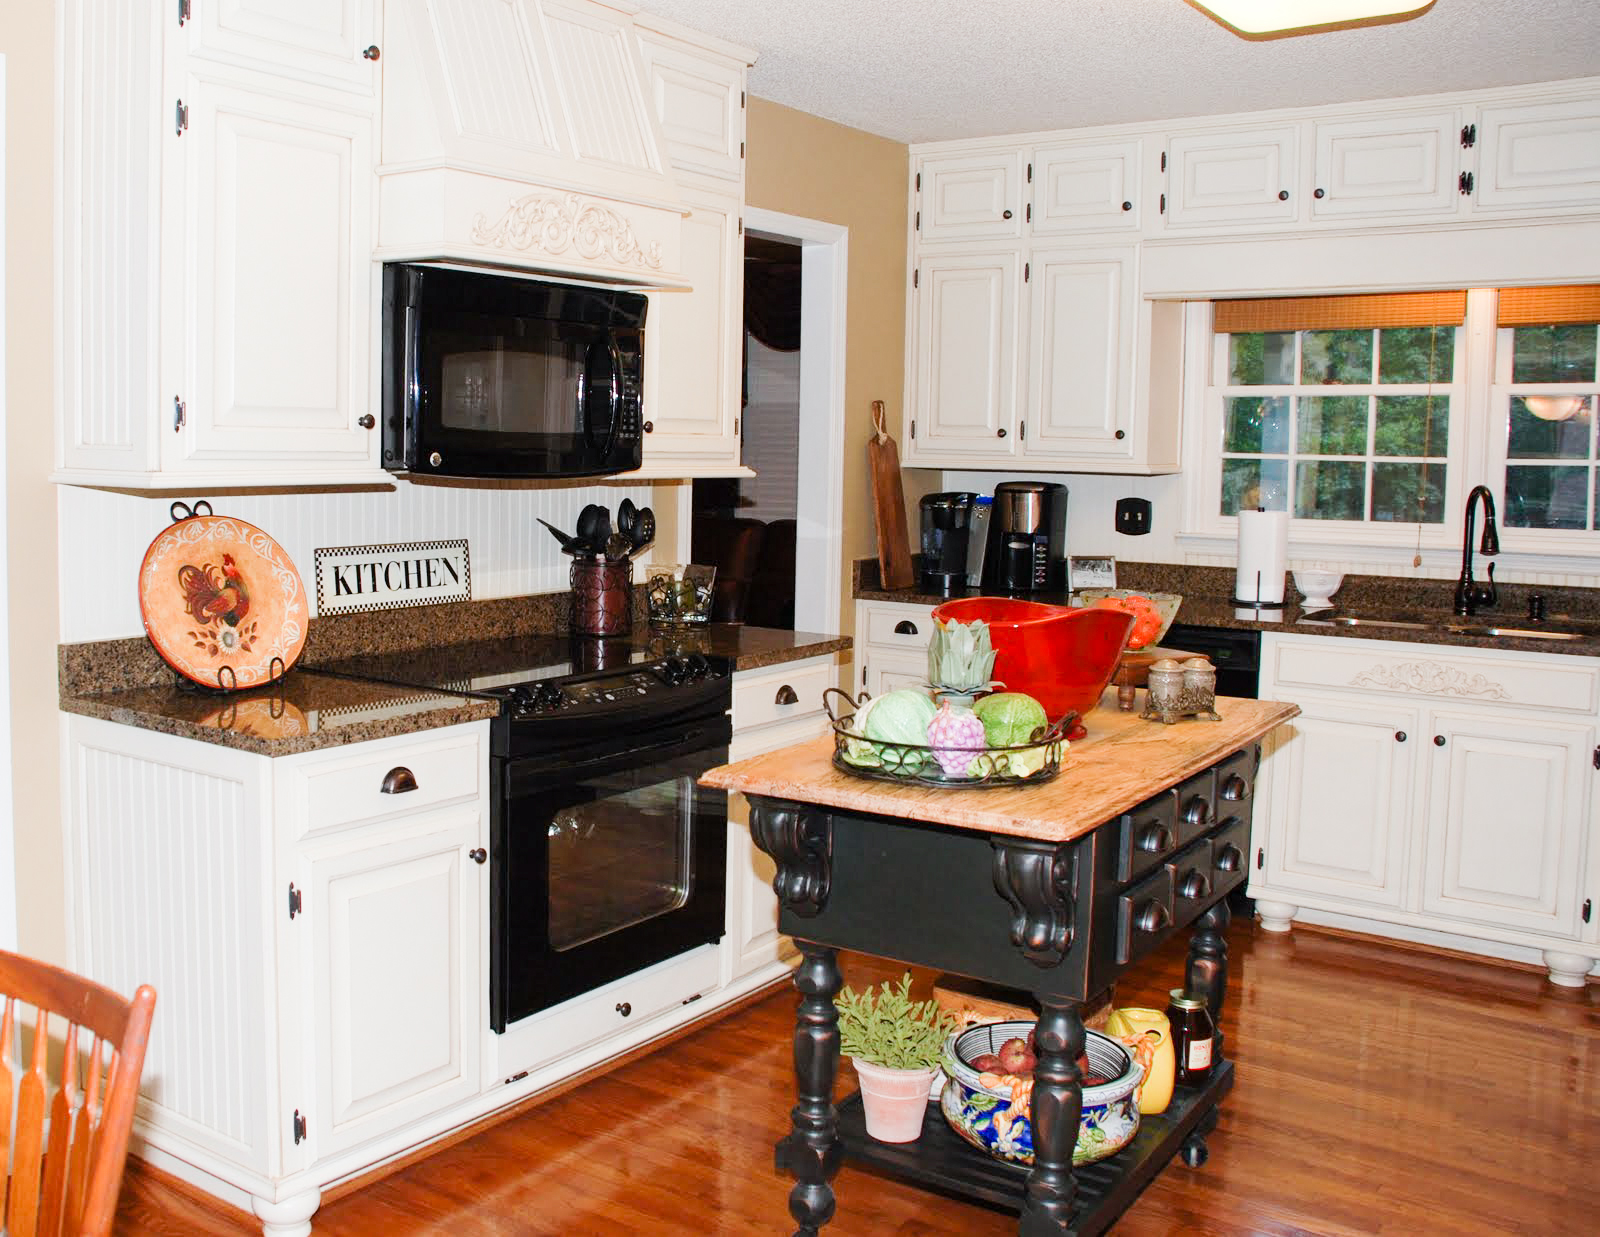 Remodelaholic | From Oak Kitchen Cabinets to Painted White ...